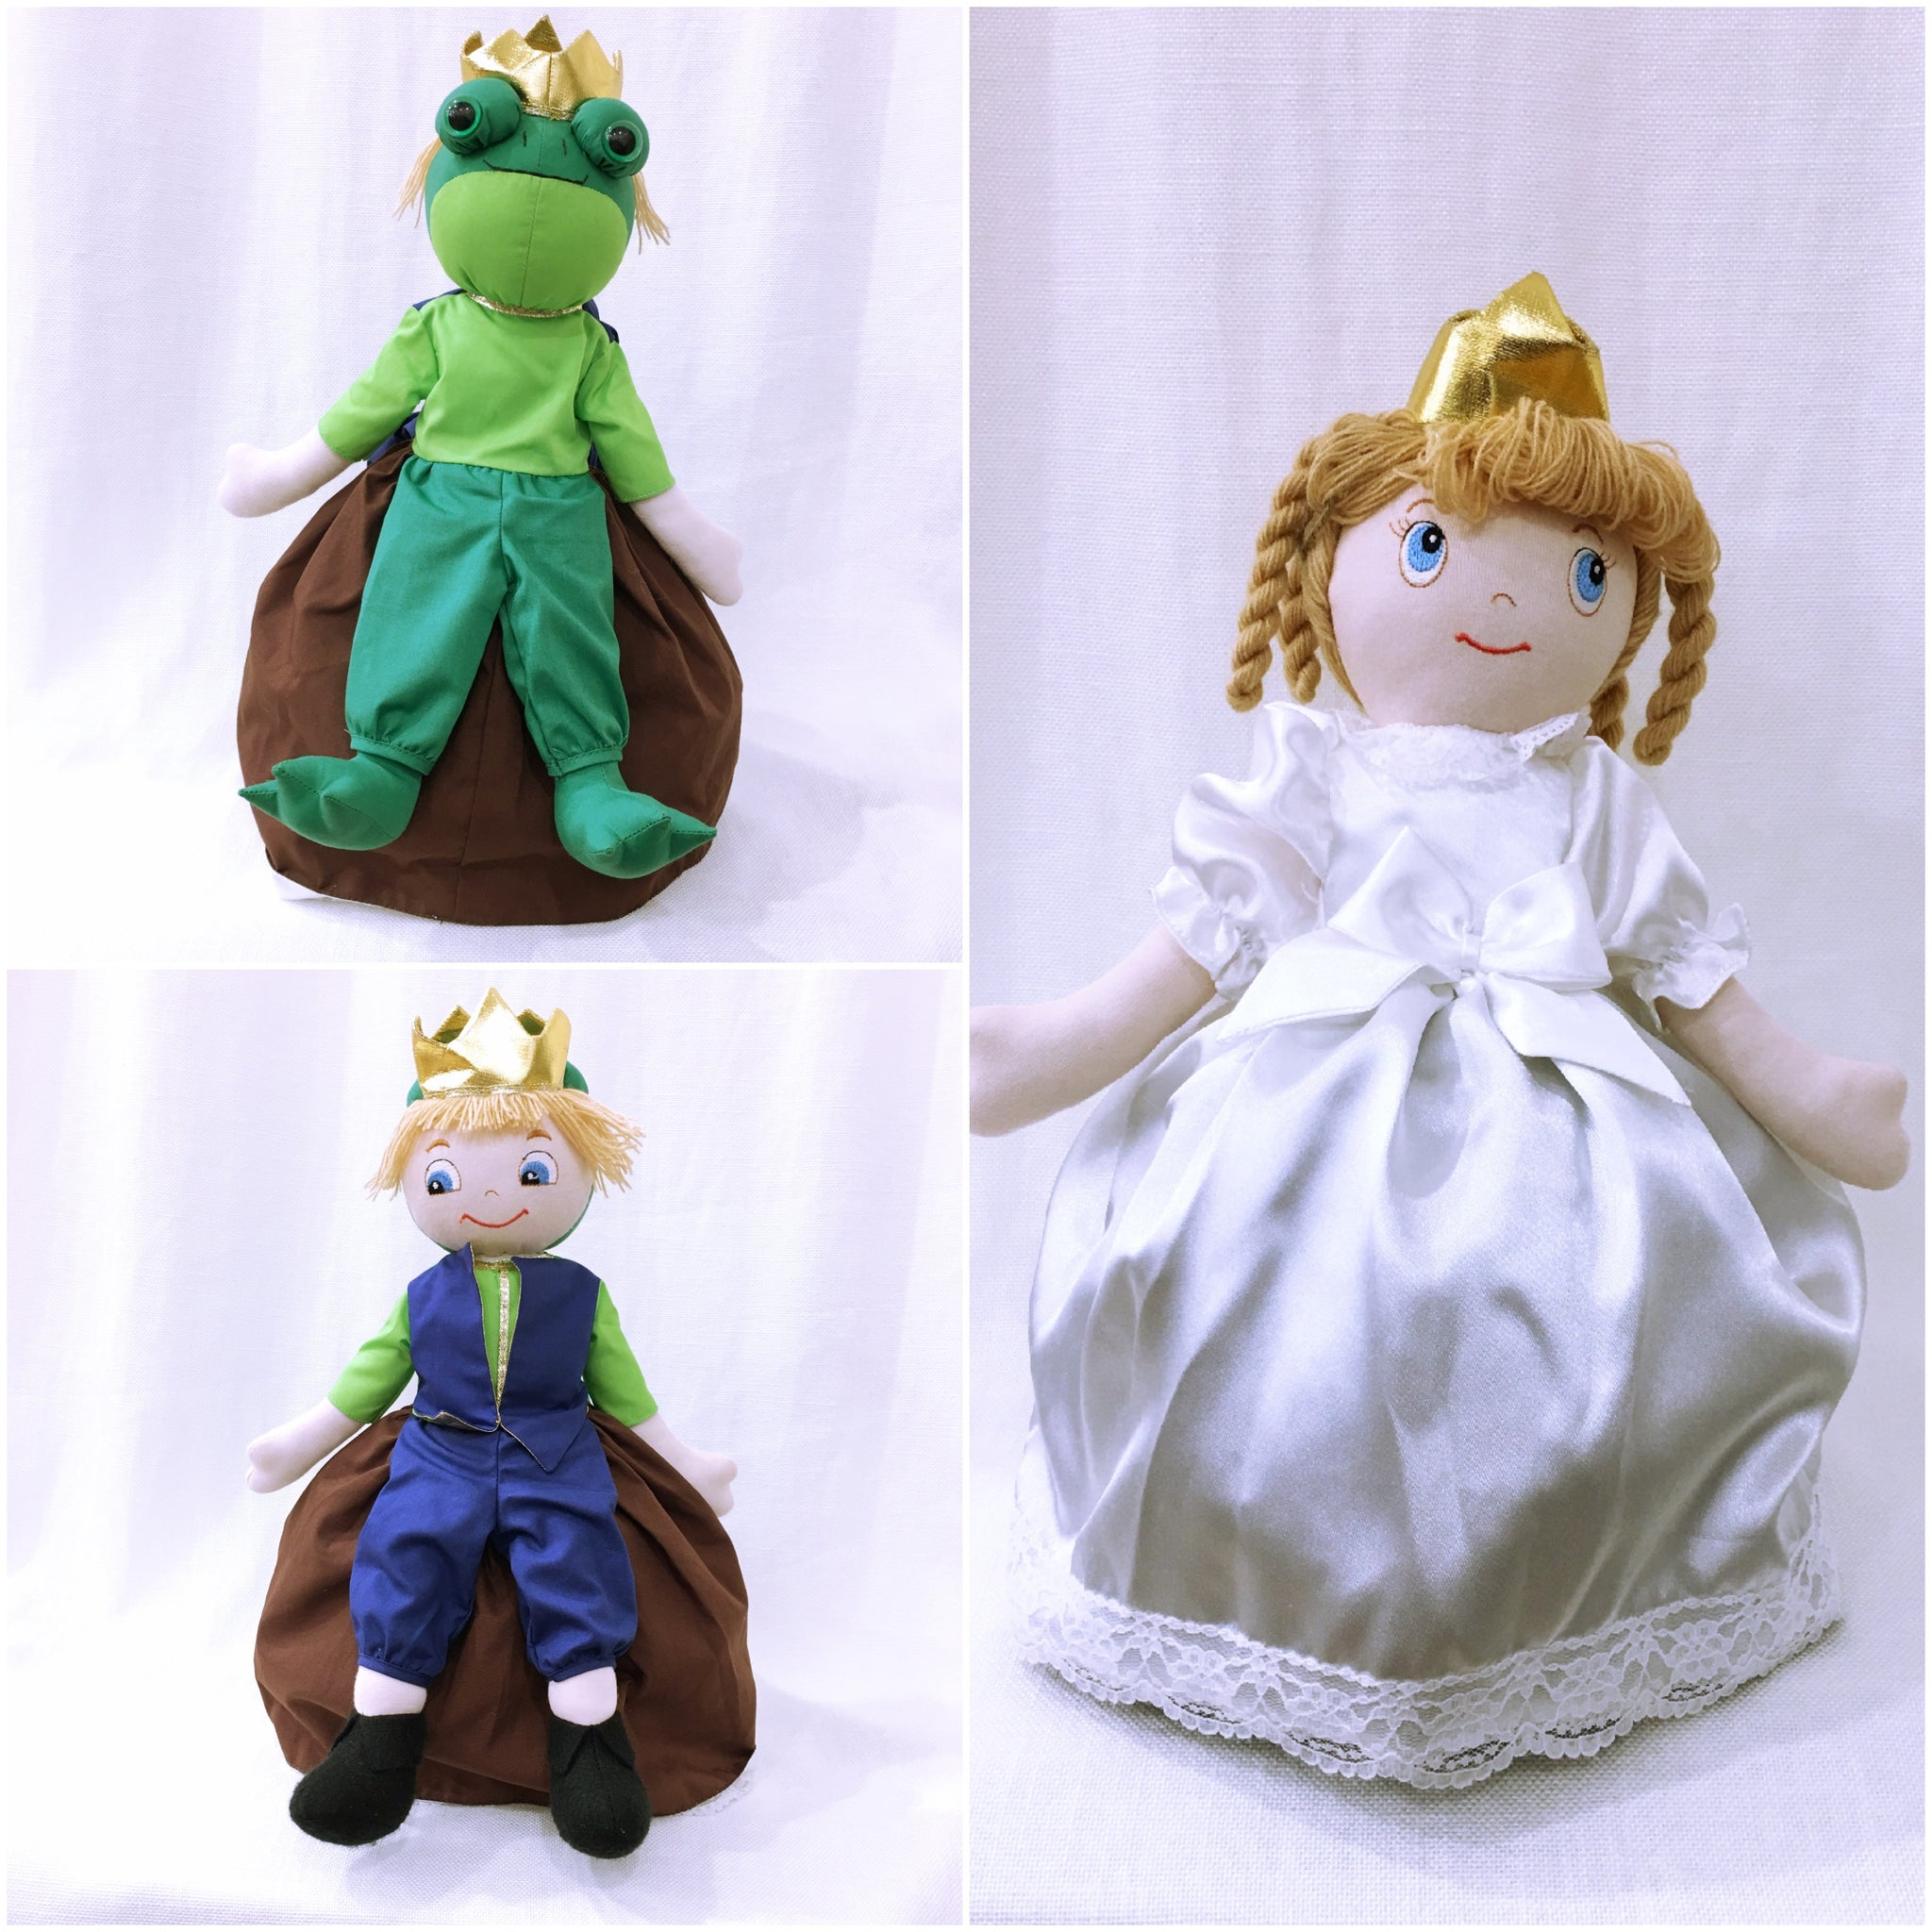 The Princess &The Frog Doll - Upside Down Toy Handmade in Thailand by the Fatima Centre | Shop Ethical Gifts for Children at ONLY JUST |